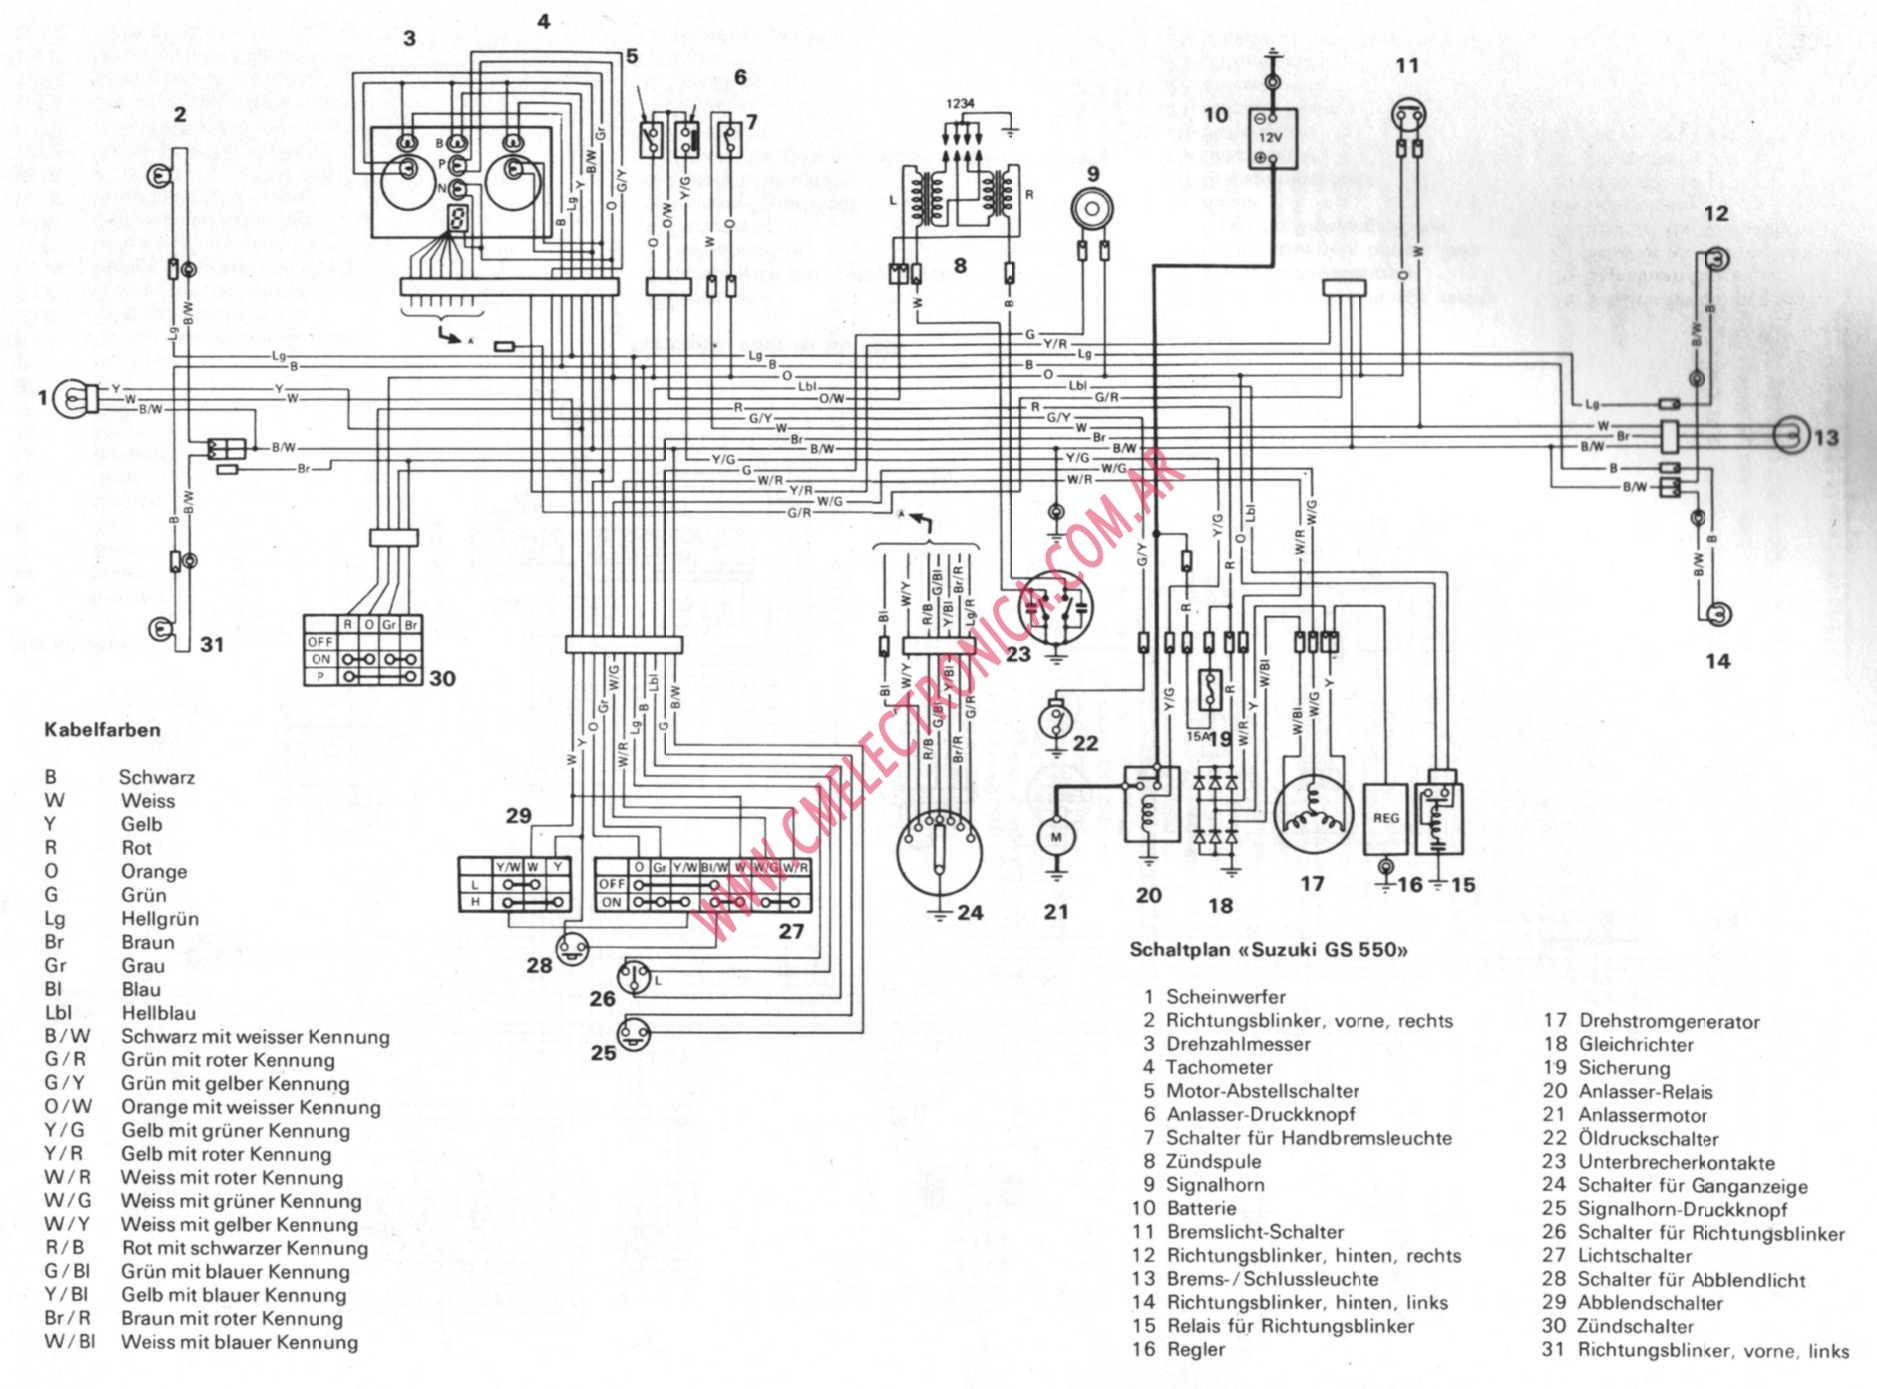 1980 Gs 550 Suzuki Wiring Diagram Libraries C72 And C77 Motorcycle All About Diagrams Gs850 U2022wiring As Well Gn 400